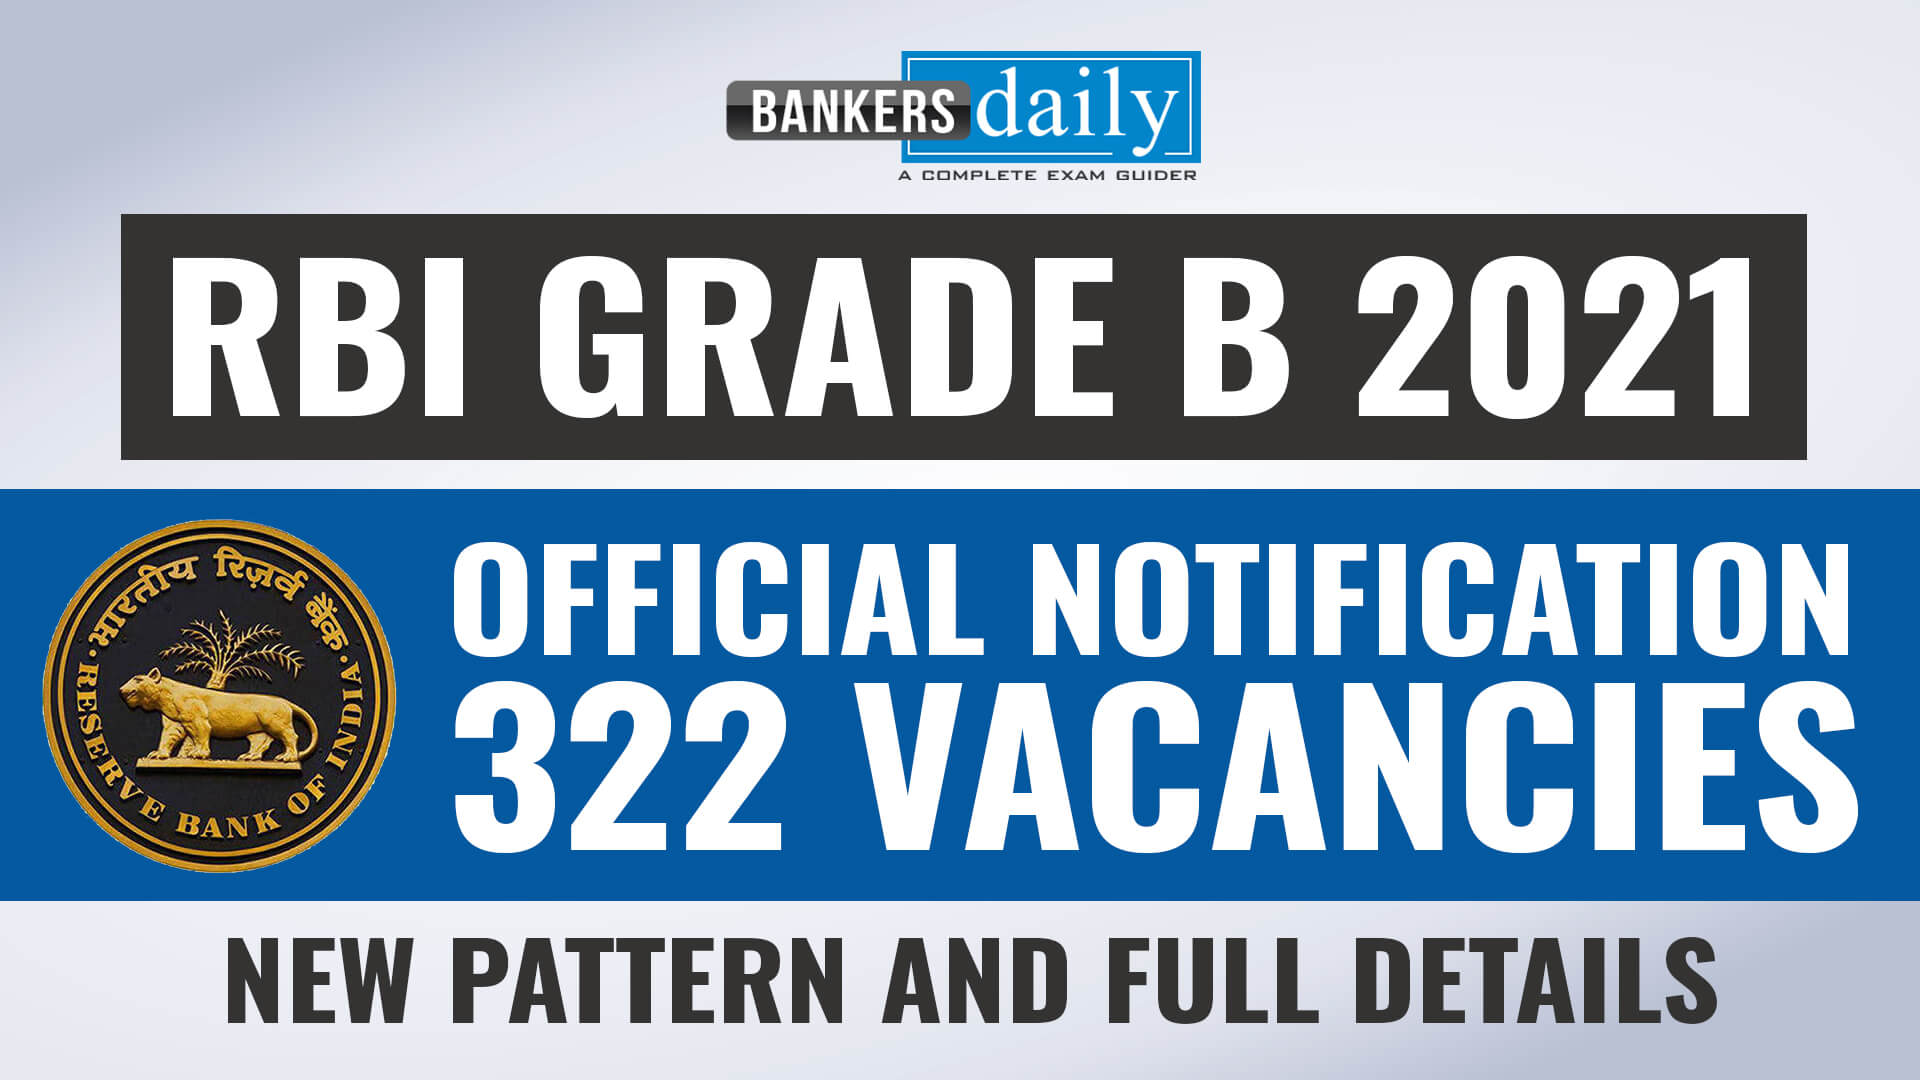 RBI-GRADE-B-2021-Official-Notification-bankersdaily.in